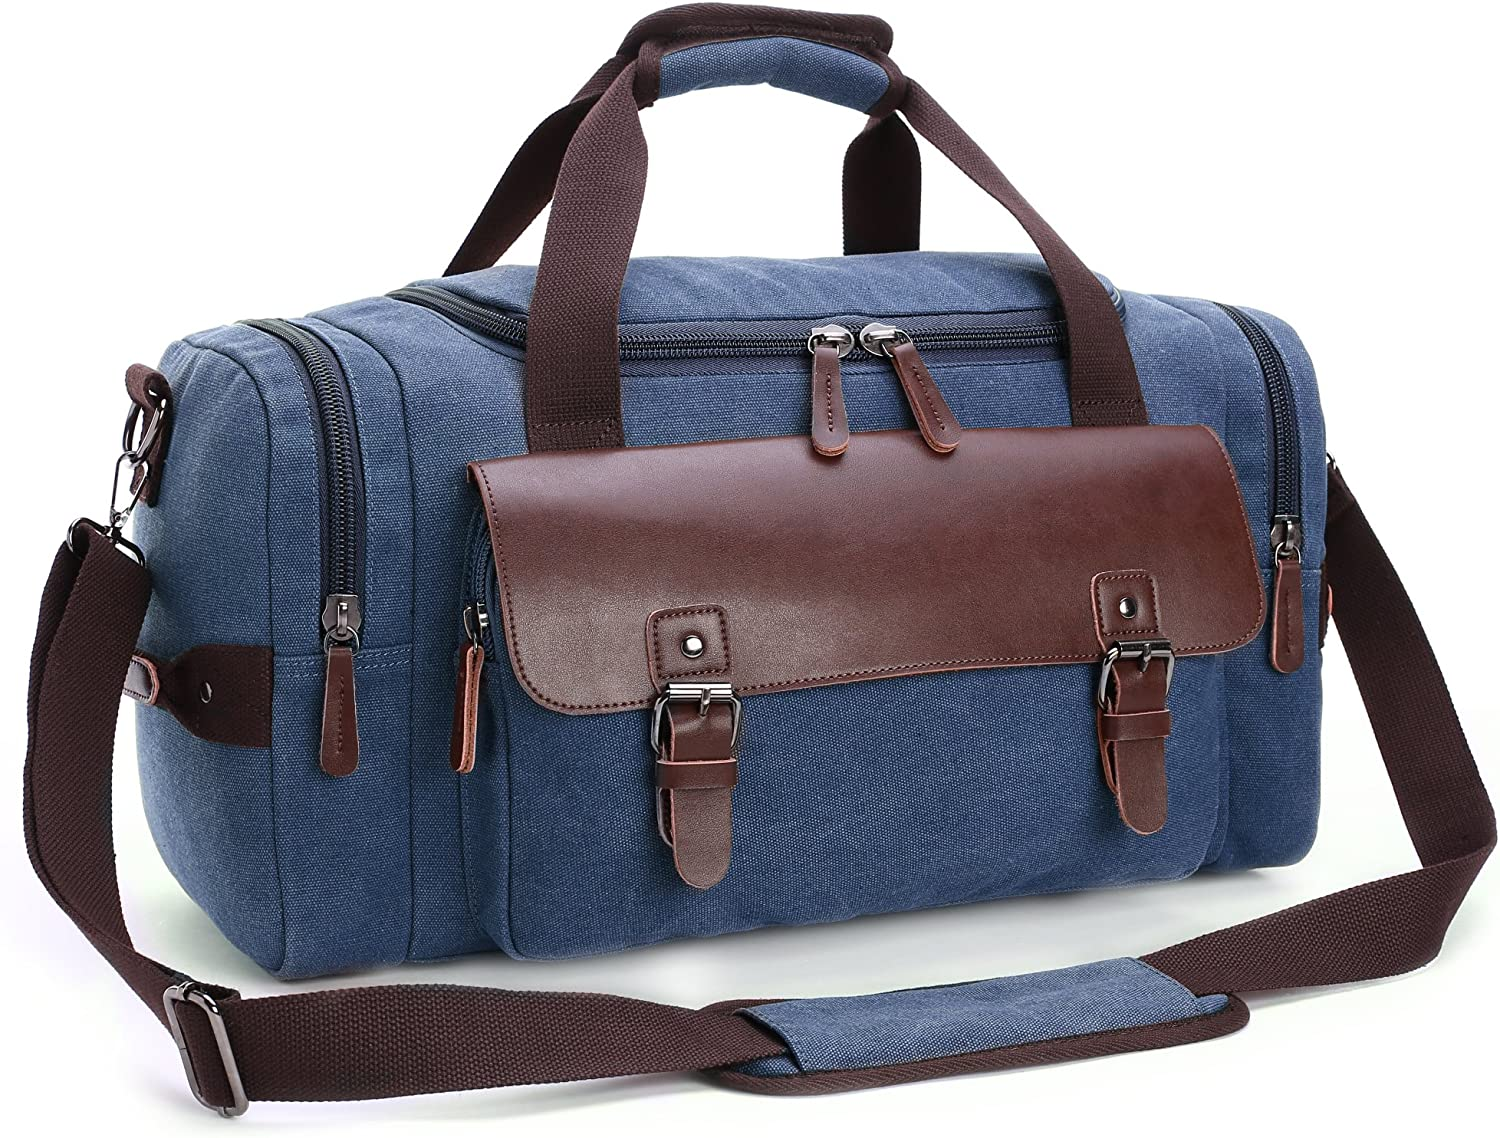 Canvas Duffel Bag, Cambond Weekender Overnight Bag Canvas PU Leather Travel Tote Duffle Bag Carryon Bag for Men and Women Blue